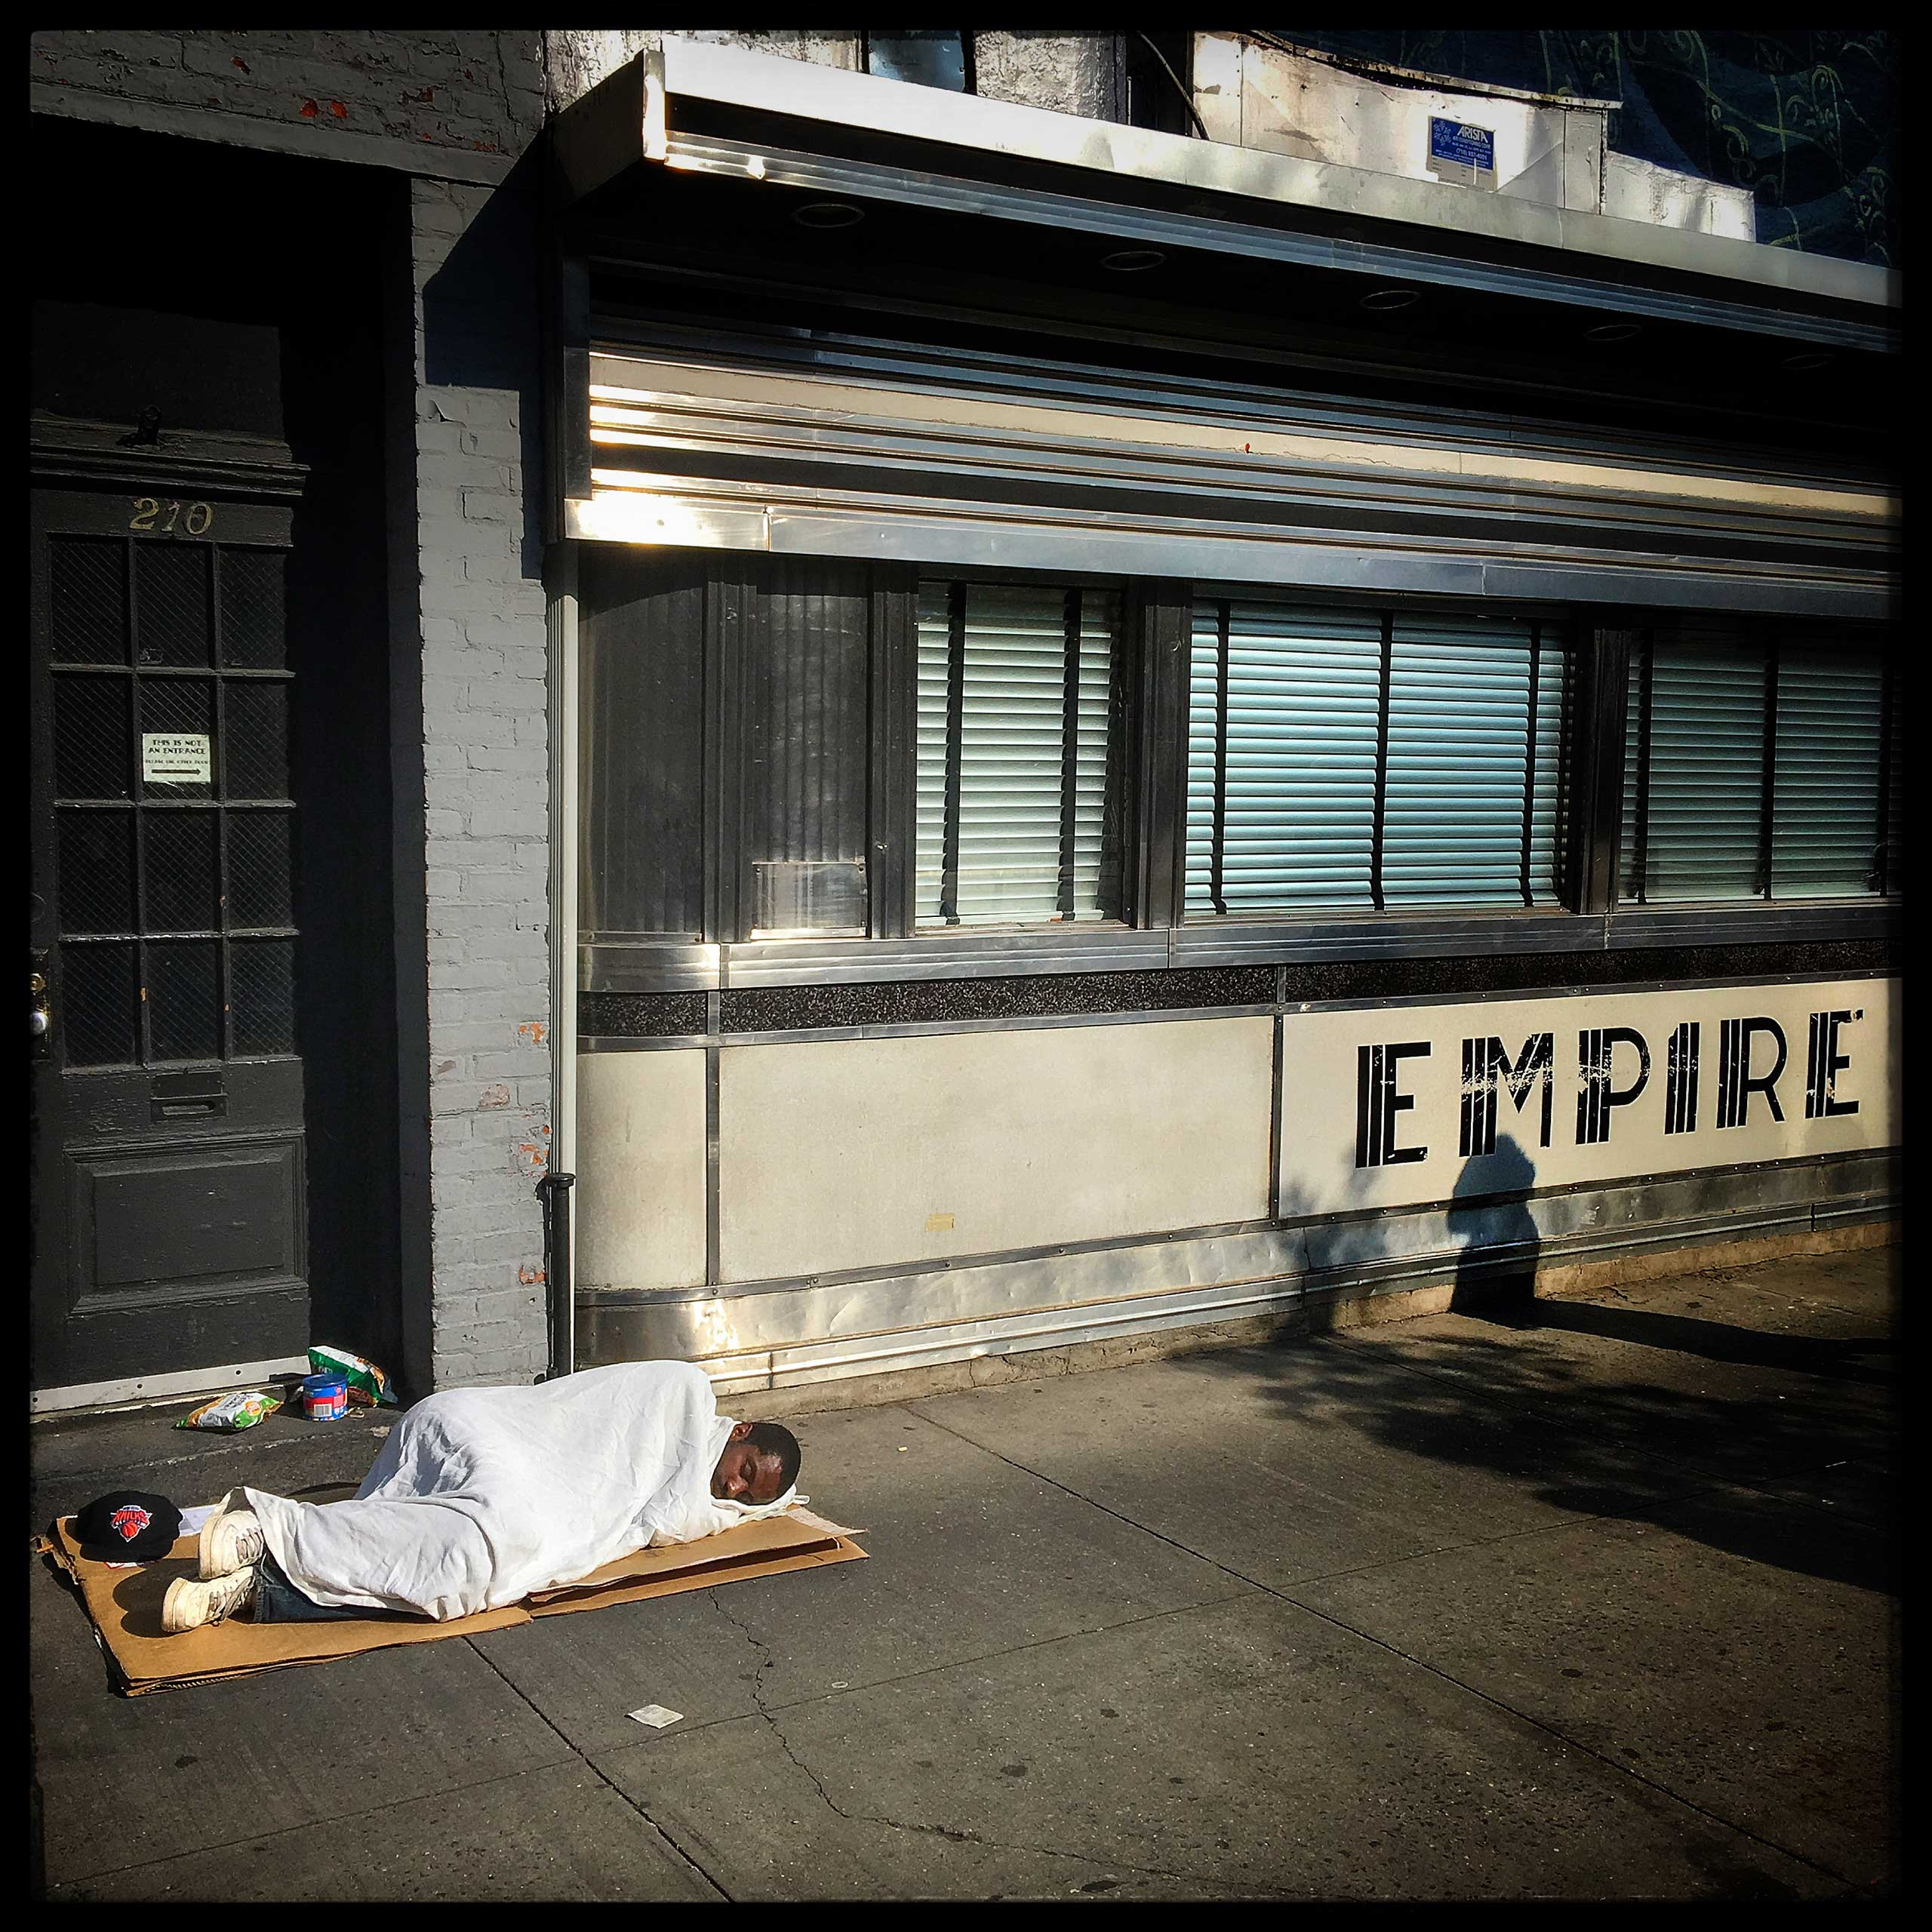 A man sleeps on the streets of Manhattan, a city touted to be one of the most popular cities in the world.